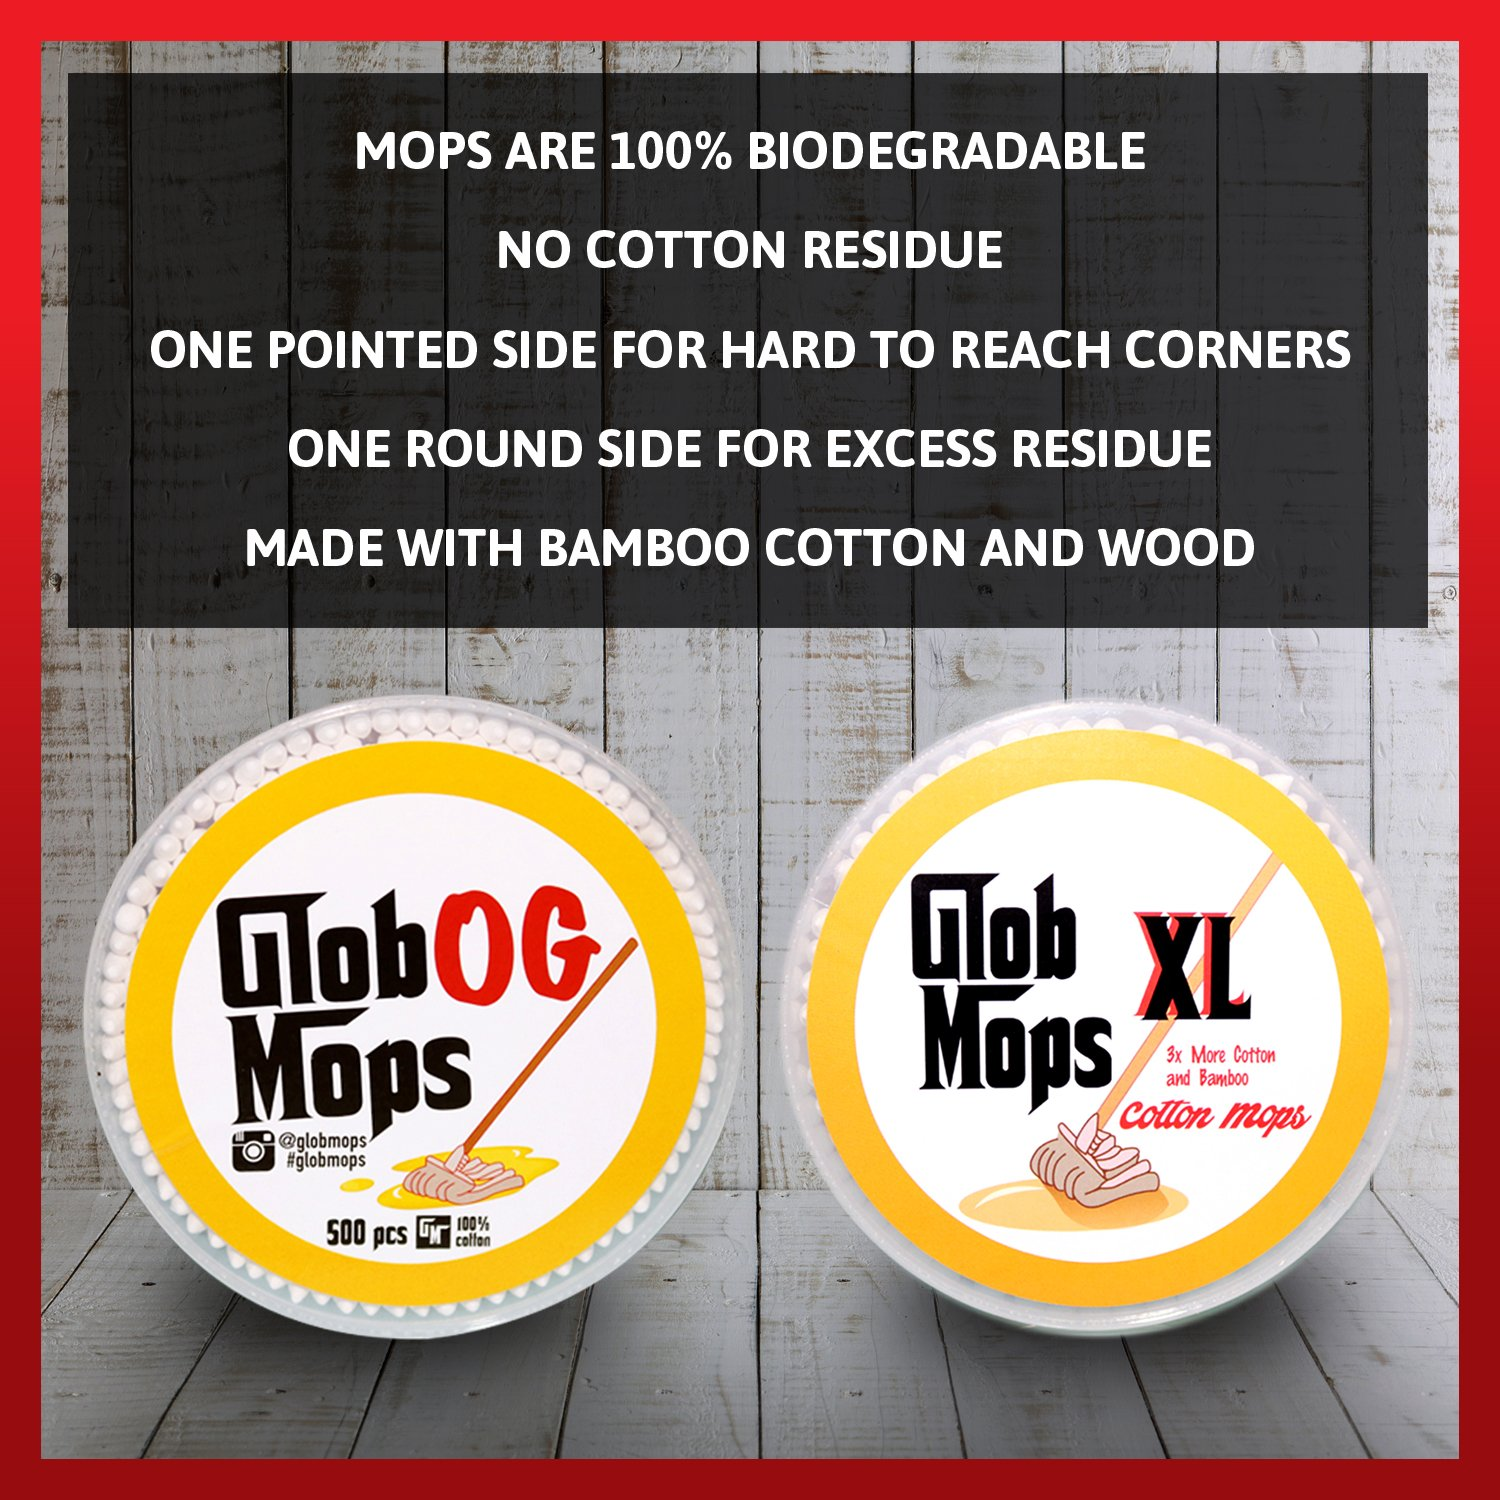 Glob Mops XL Cotton Swabs 2-Pack Bundle | Extra Absorbent | Eco-Friendly | 600 Total Mops